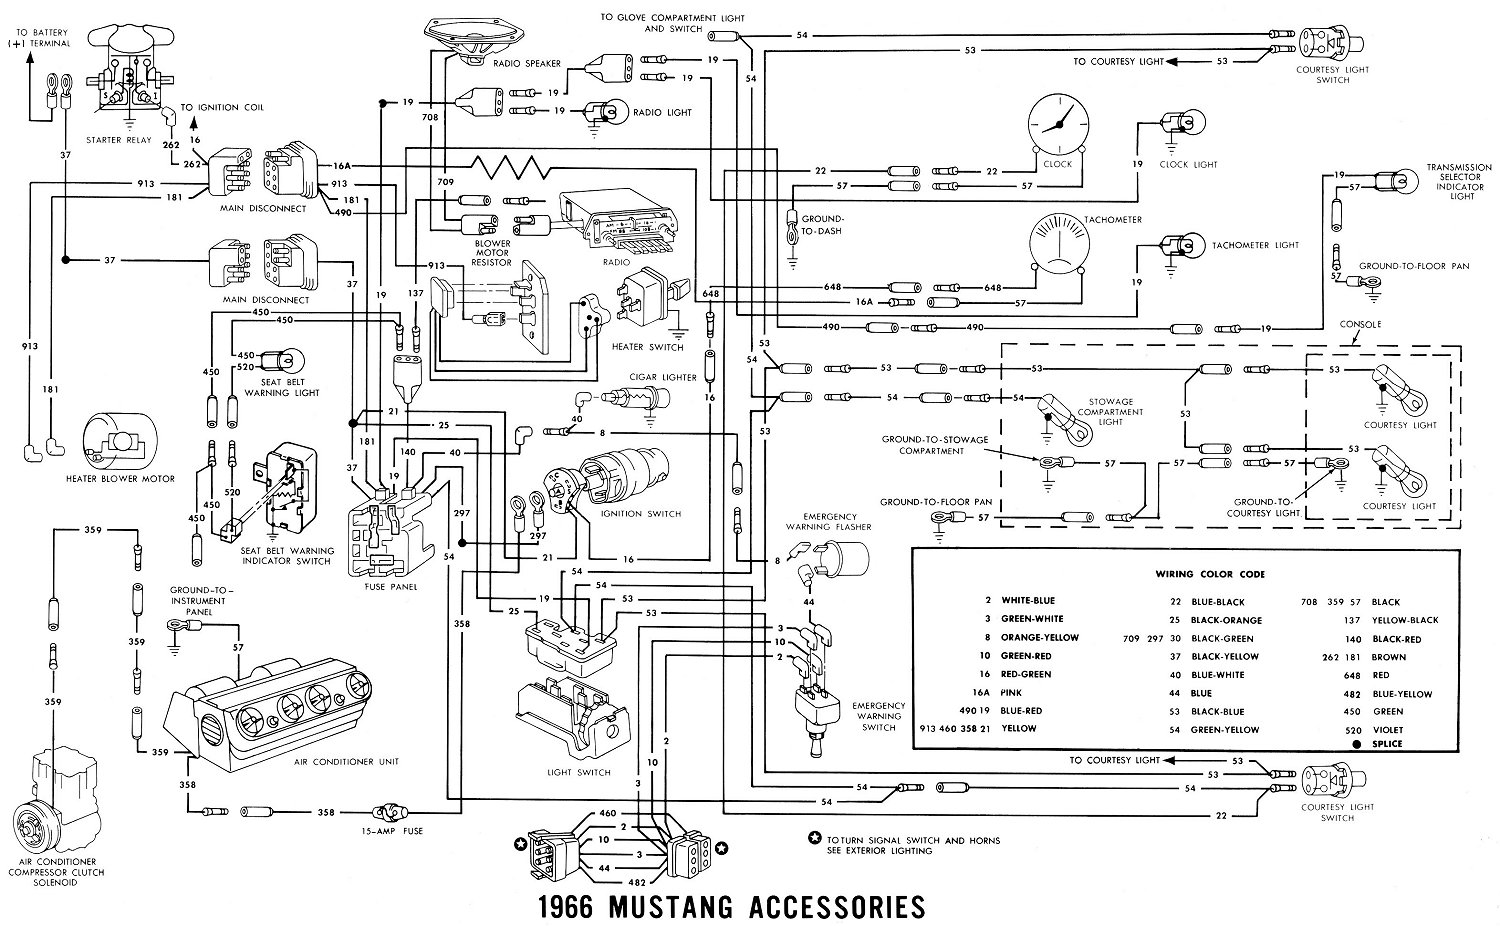 1966 Mustang Accessories · Schematic